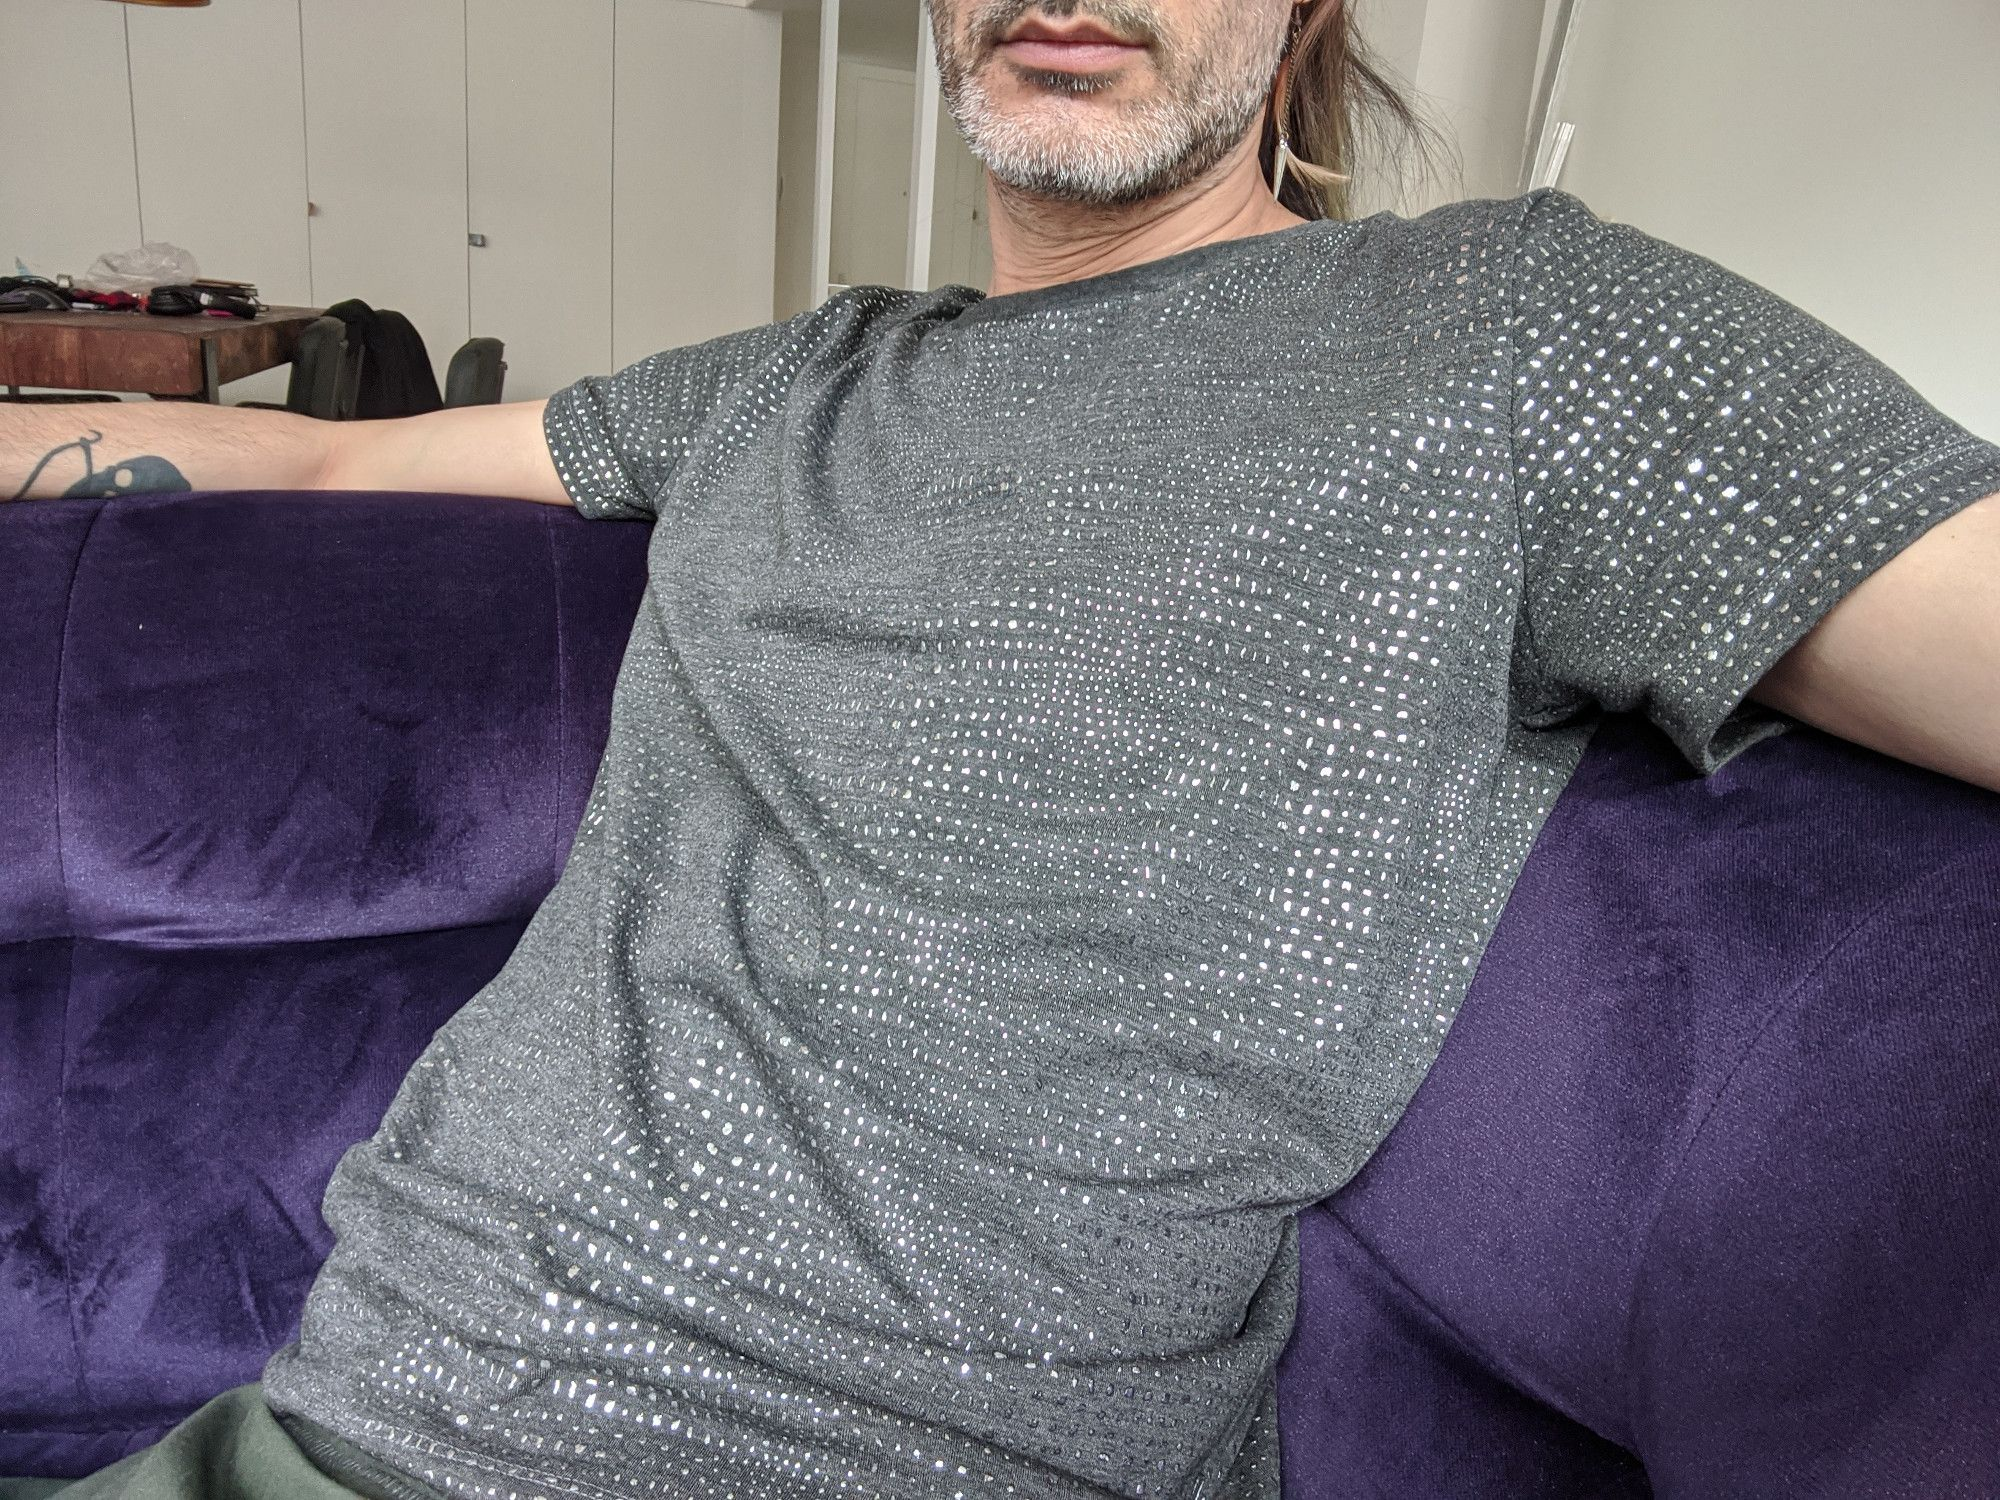 A man, seated on a purple couch and wearing a speckled grey Teagan T-Shirt.